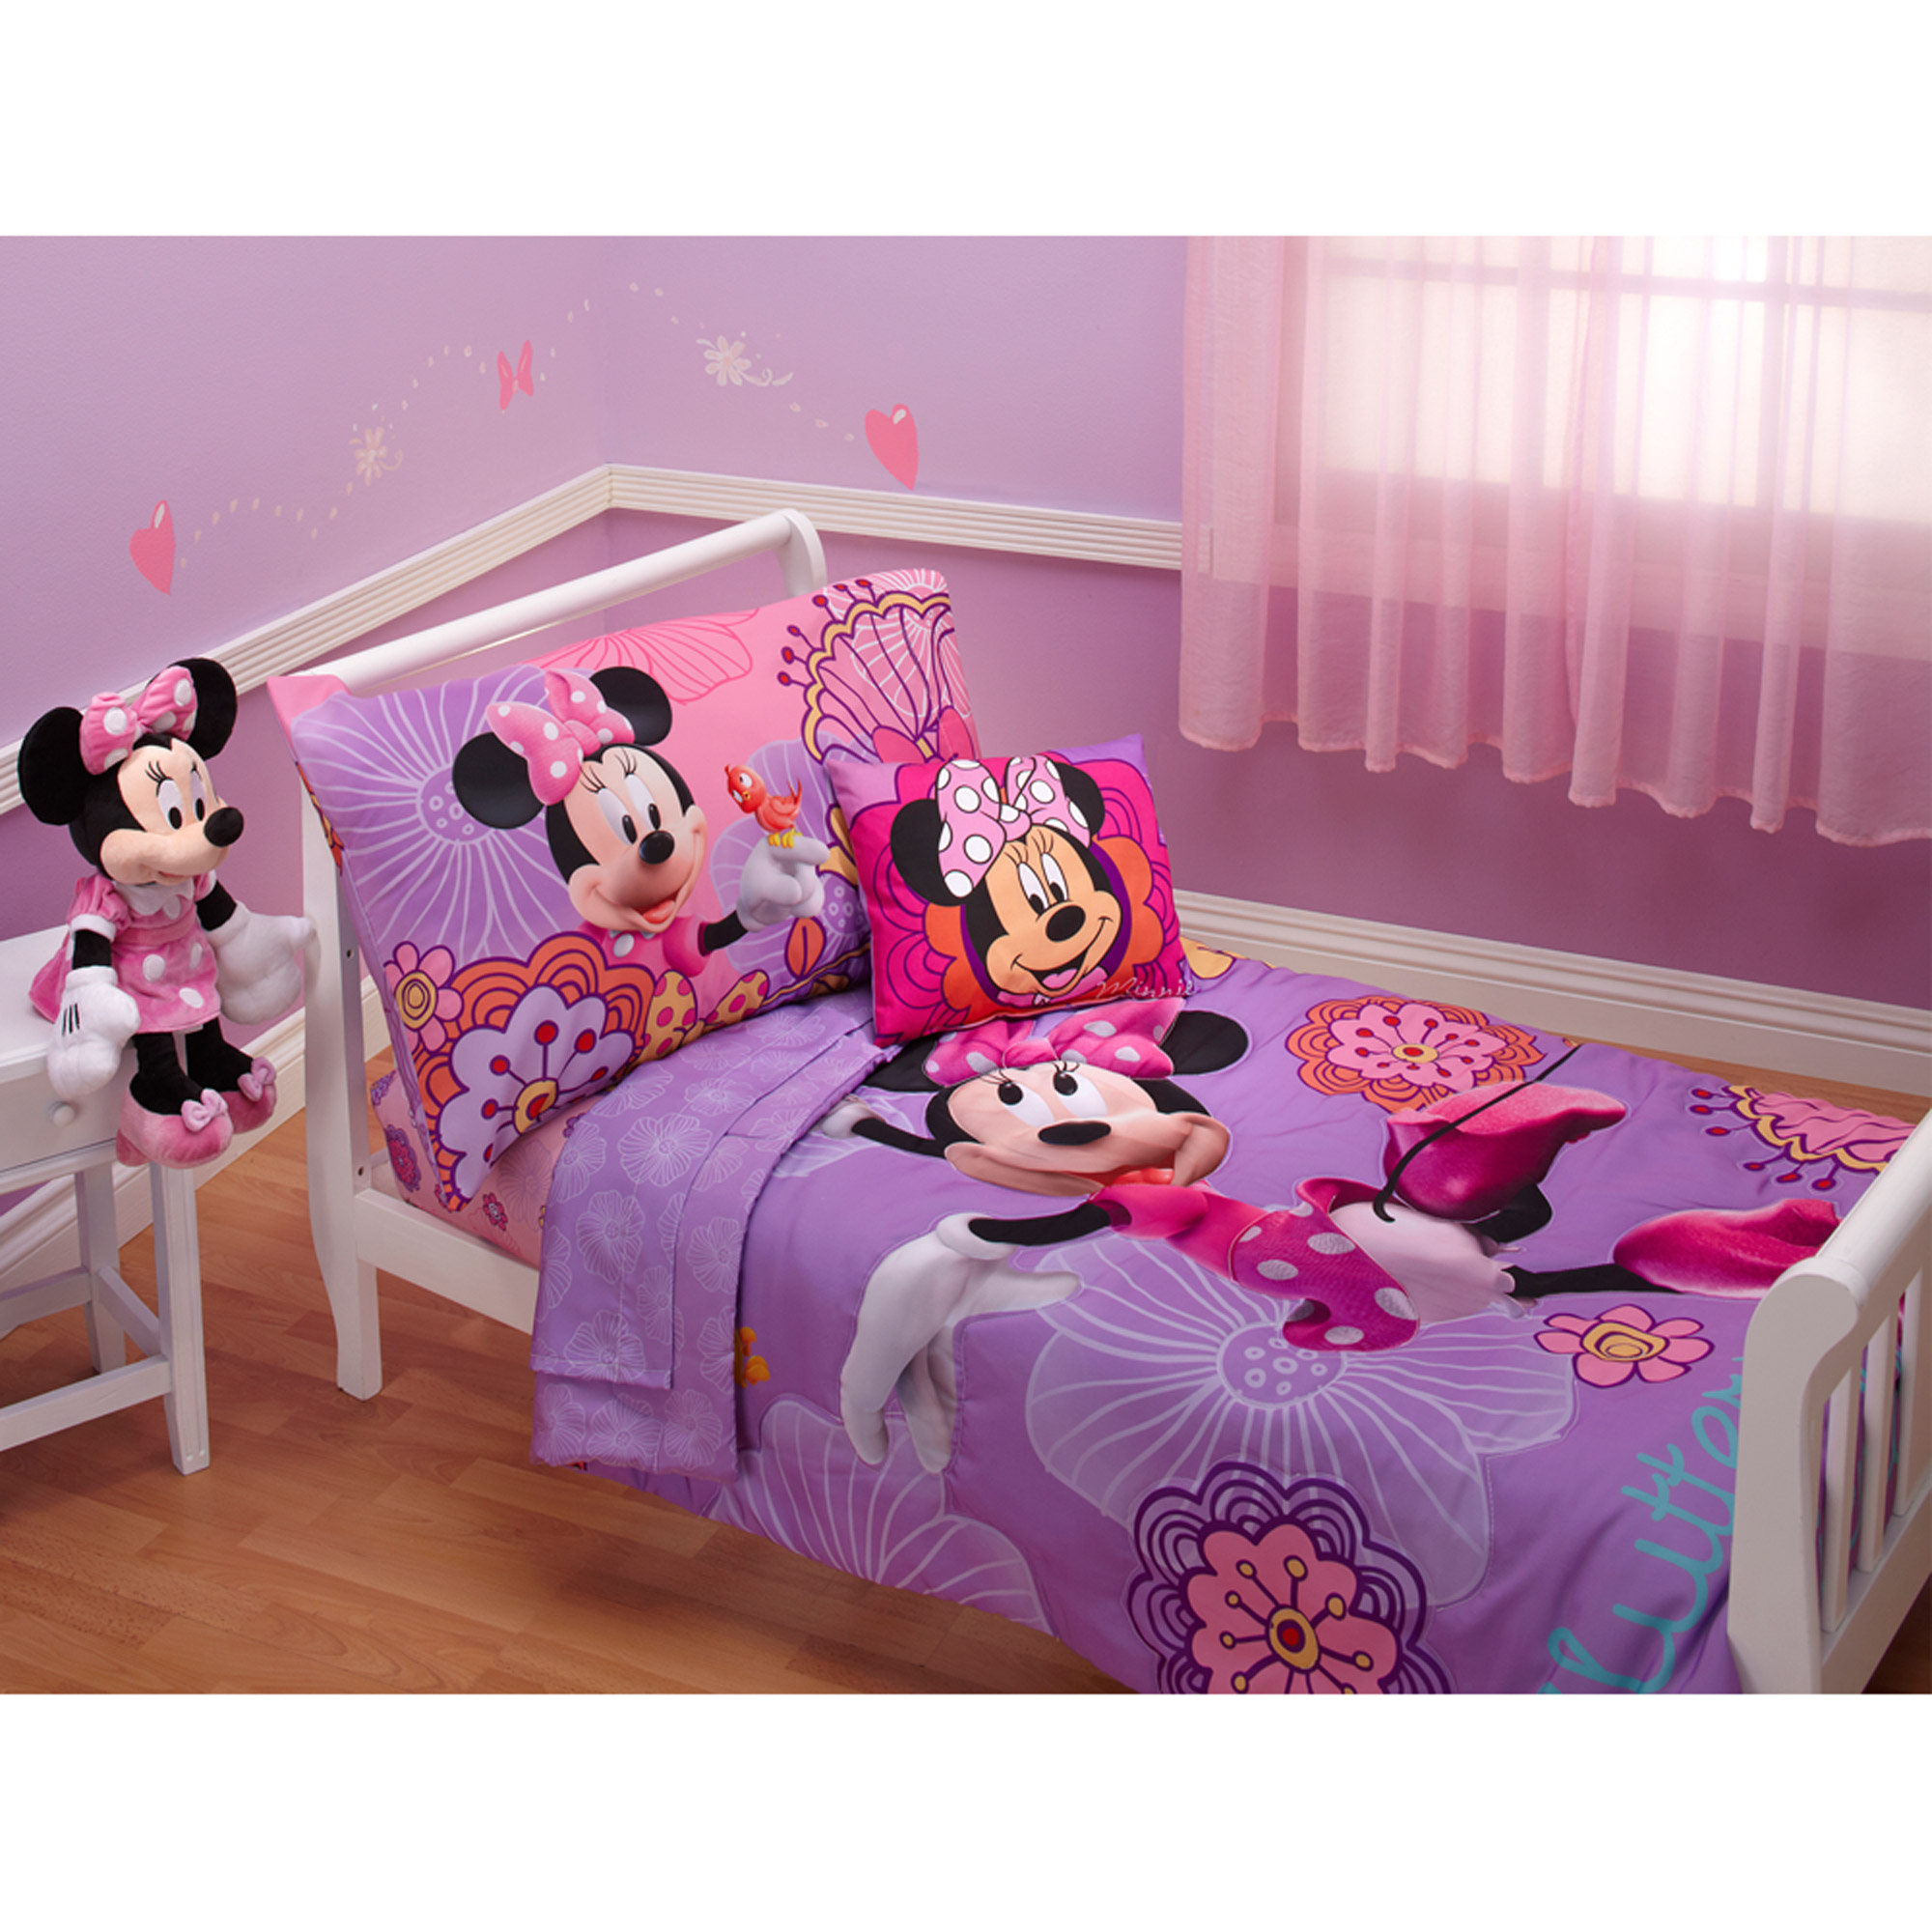 Disney Minnie Mouse Fluttery Friends 3pc Toddler Bedding Set with BONUS Matching Pillow Case